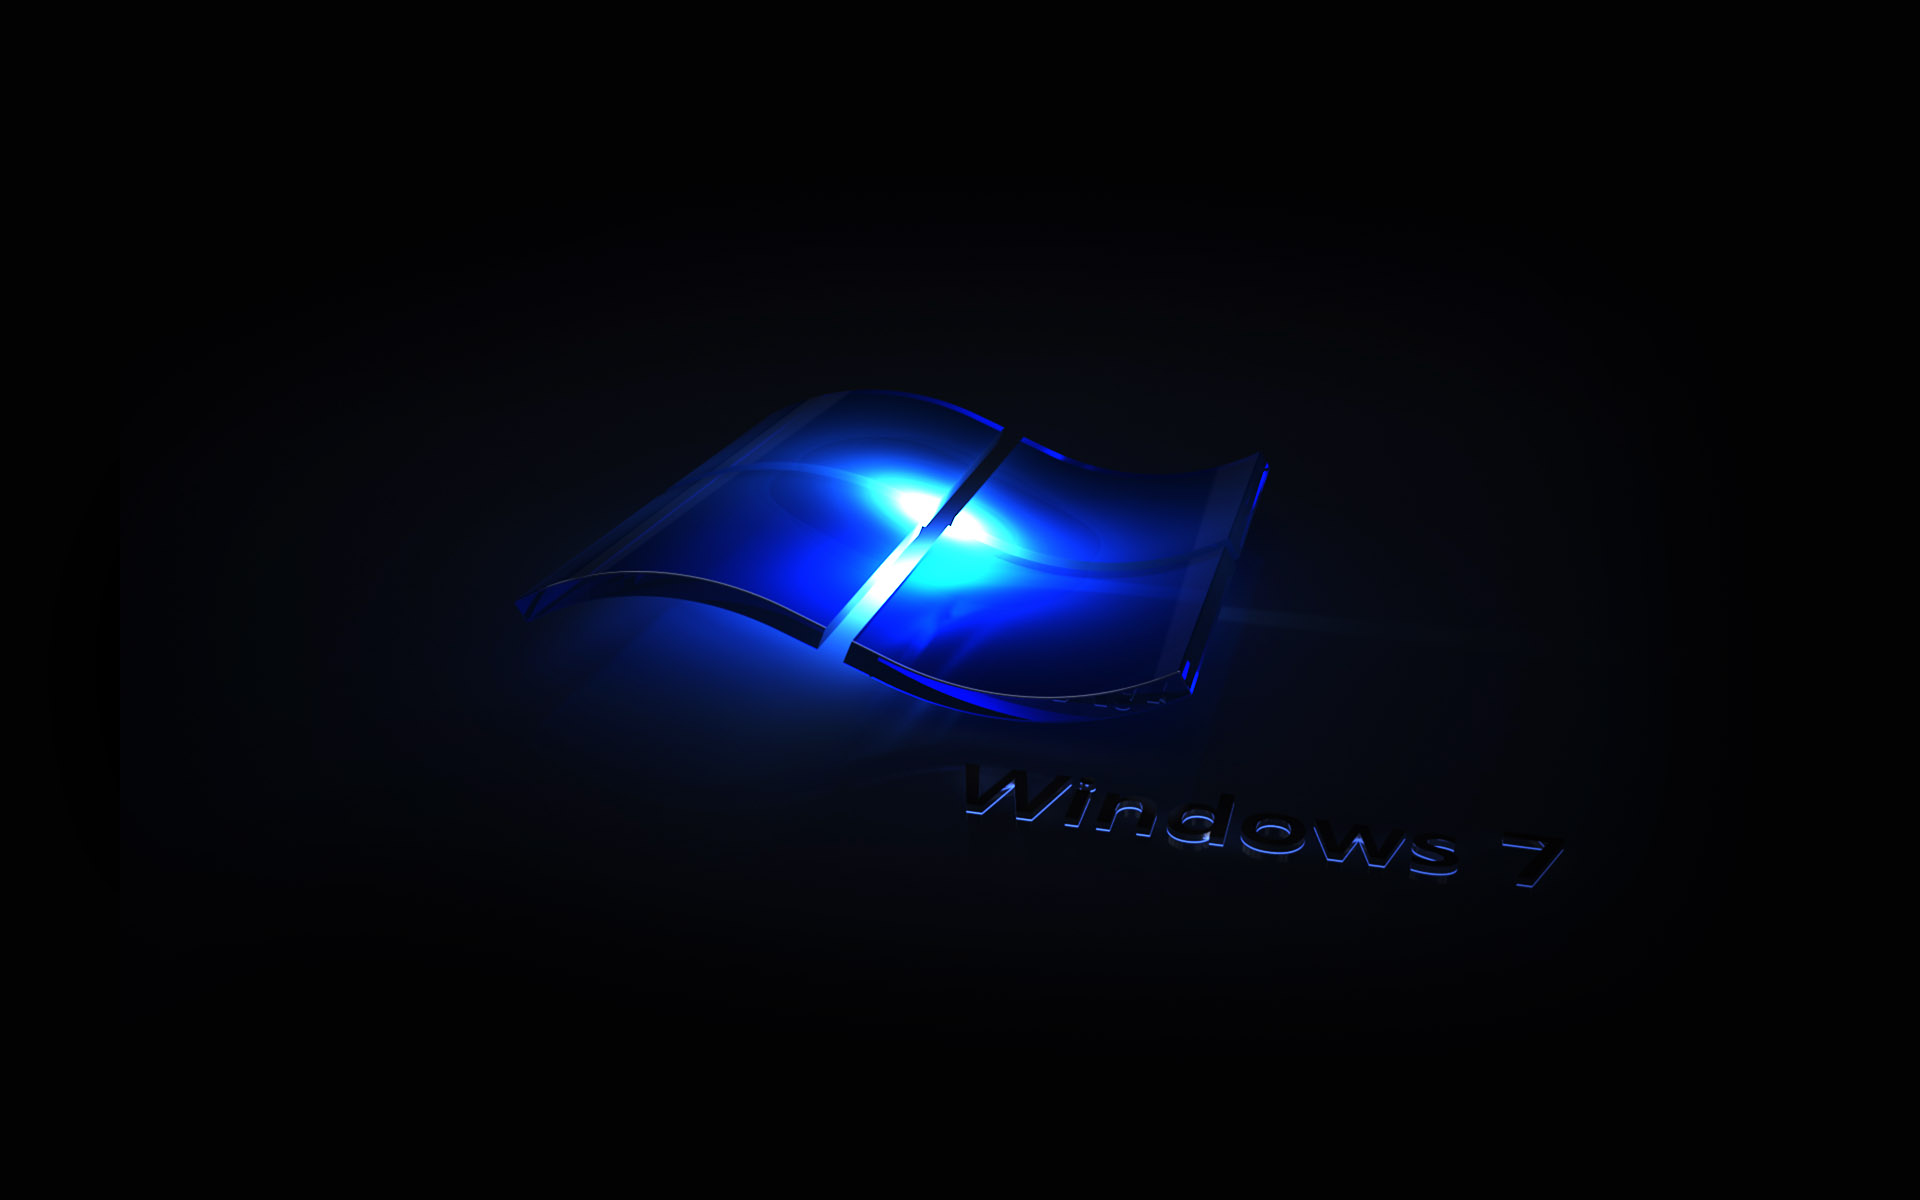 Wallpapers Windows 7